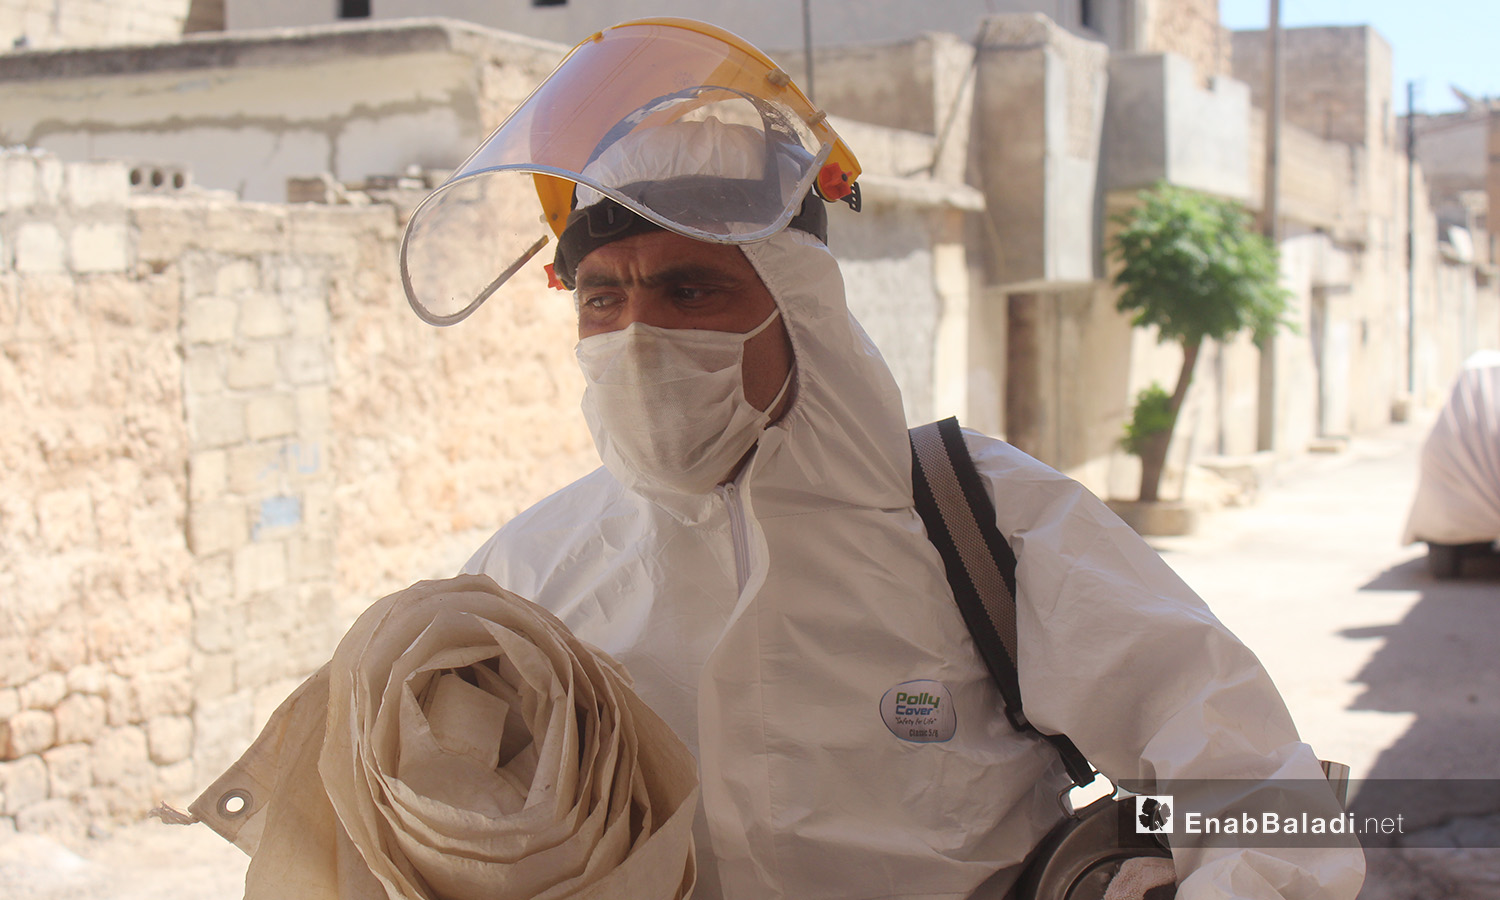 An insecticide spraying and awareness campaign on the Leishmaniasis disease in Idlib countryside – August 2020 (Enab Baladi / Iyad Abdel Jawad)